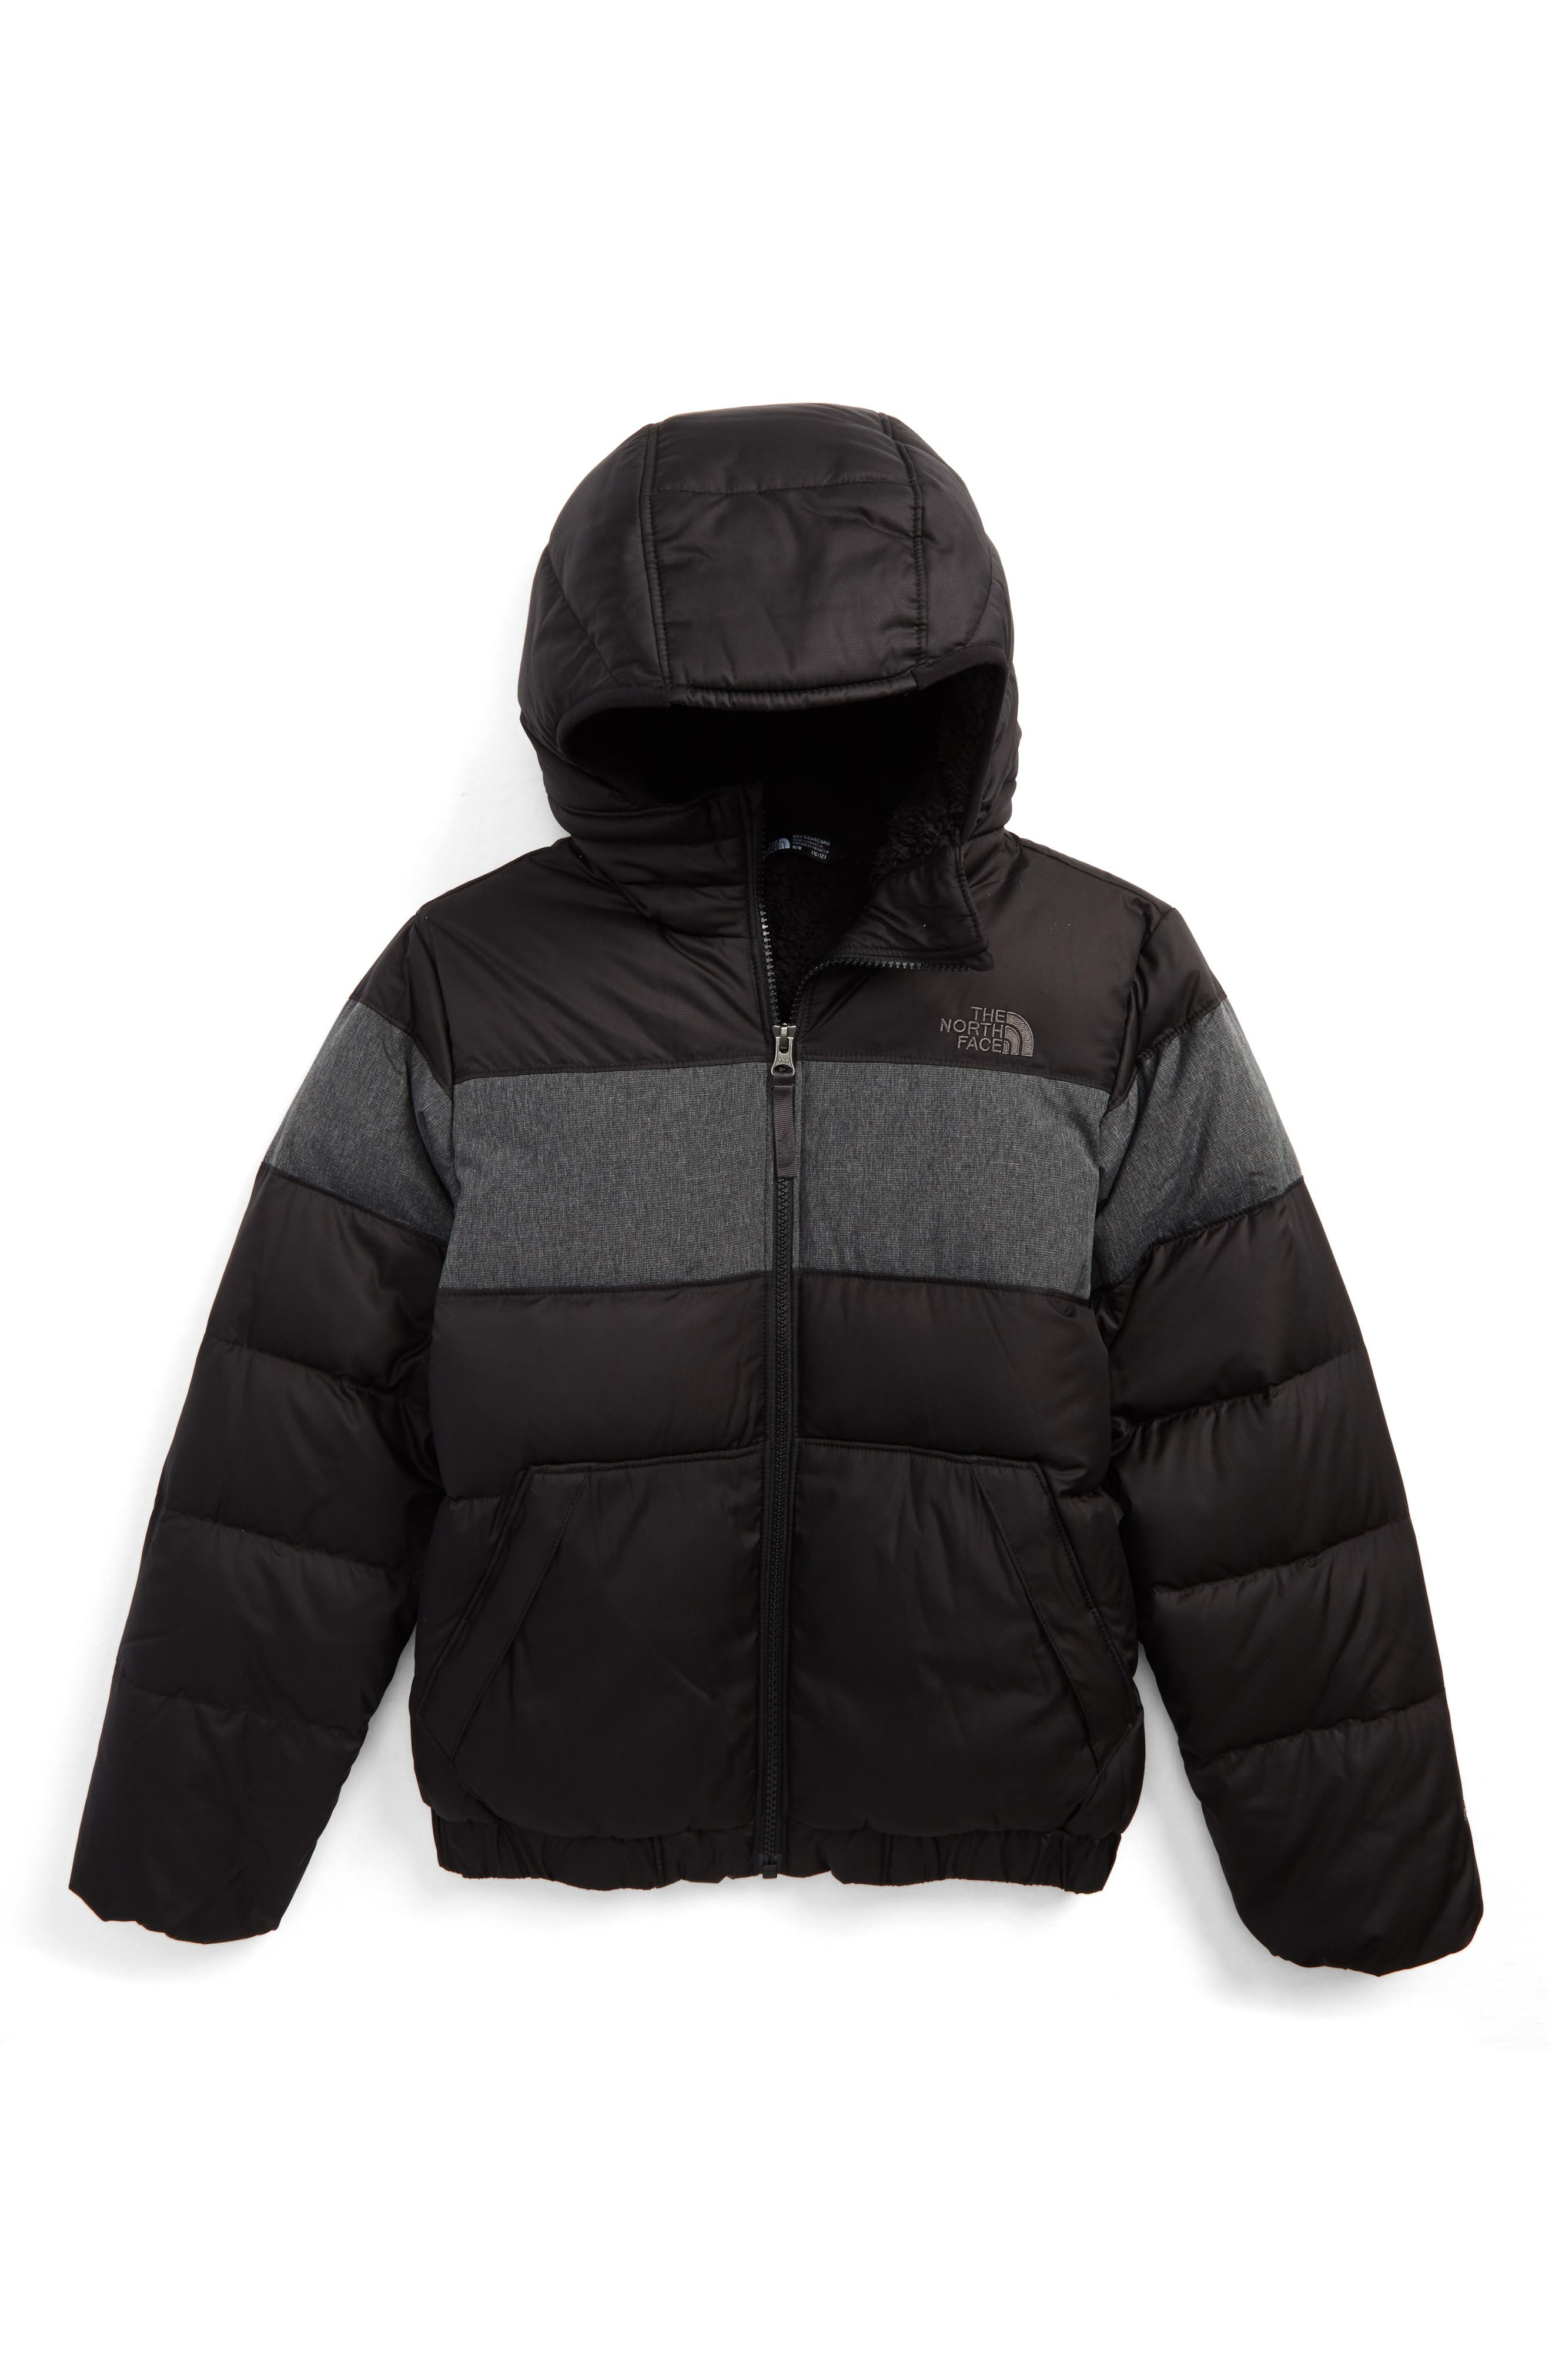 Main Image - The North Face Moondoggy 2.0 Water Repellent Down Jacket (Big Boys)